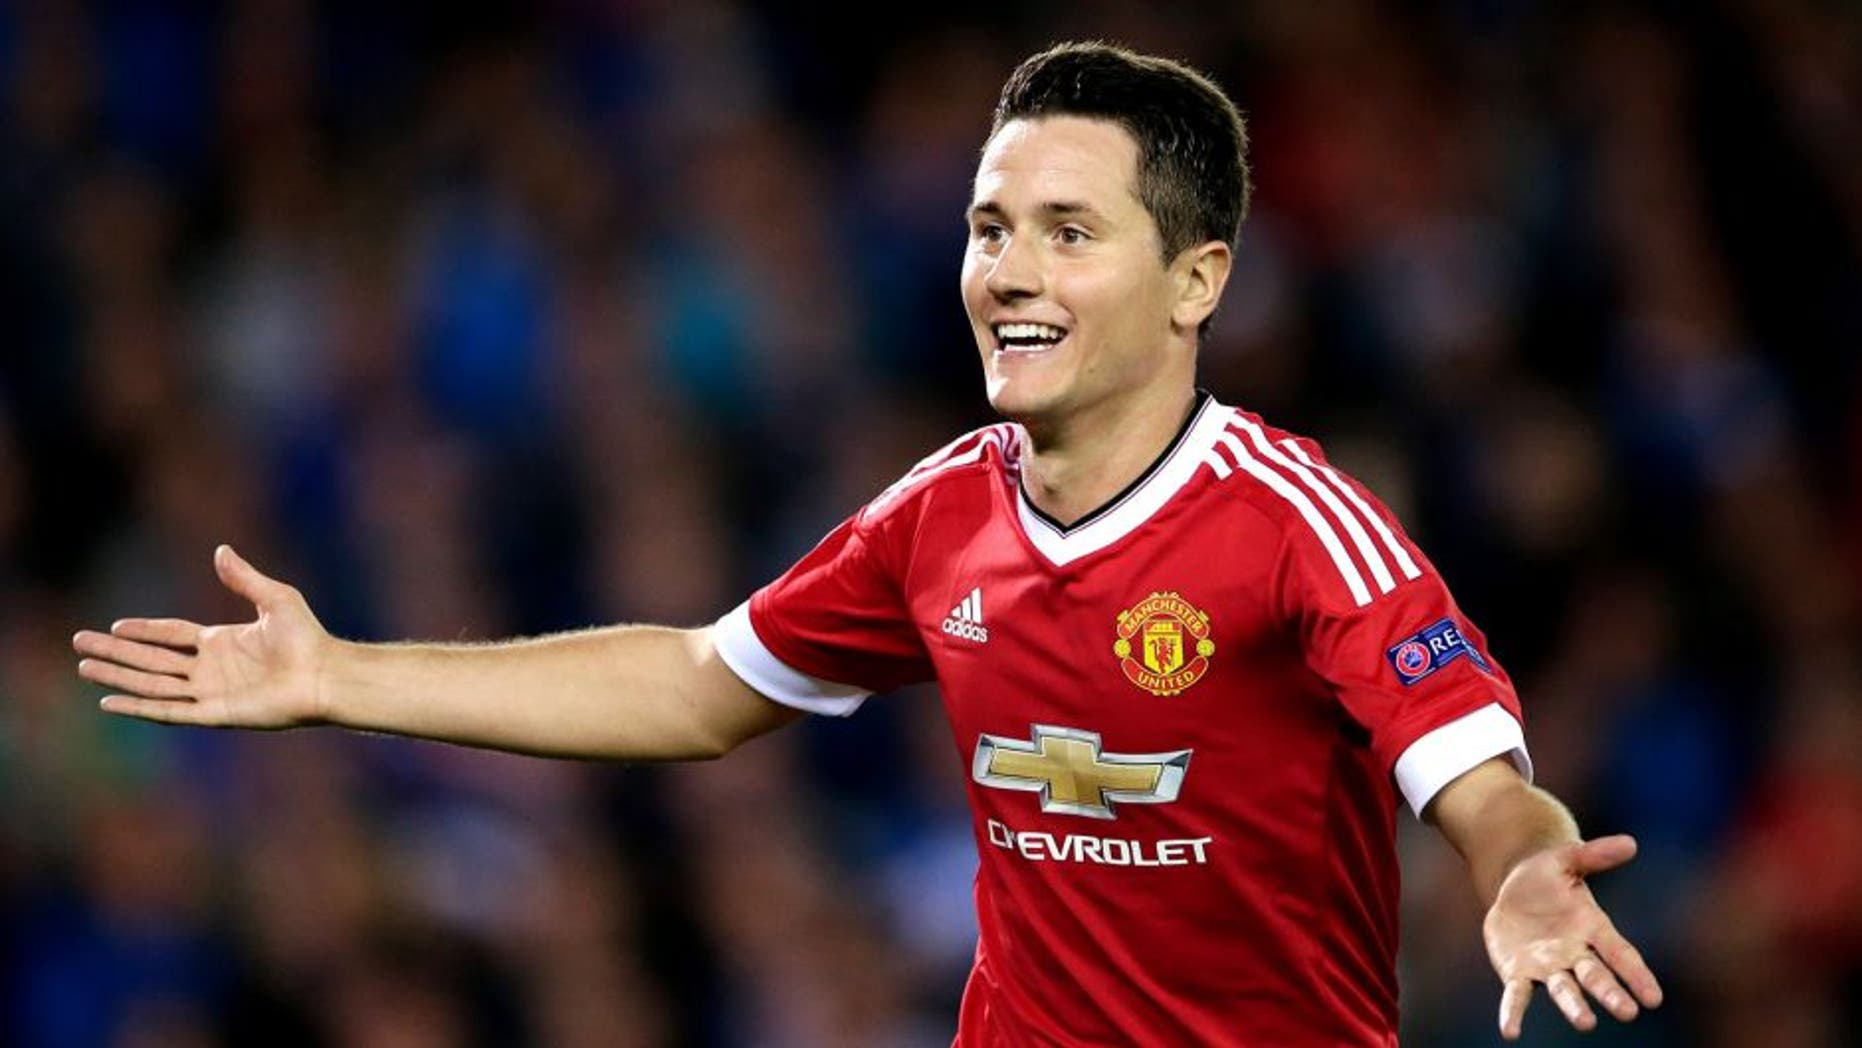 Ander Herrera of Manchester United during the UEFA Champions League play-offs match between Club Brugge and Manchester United on August 26, 2015 at the Jan Breydel stadium in Brugge, Belgium.(Photo by VI Images via Getty Images)